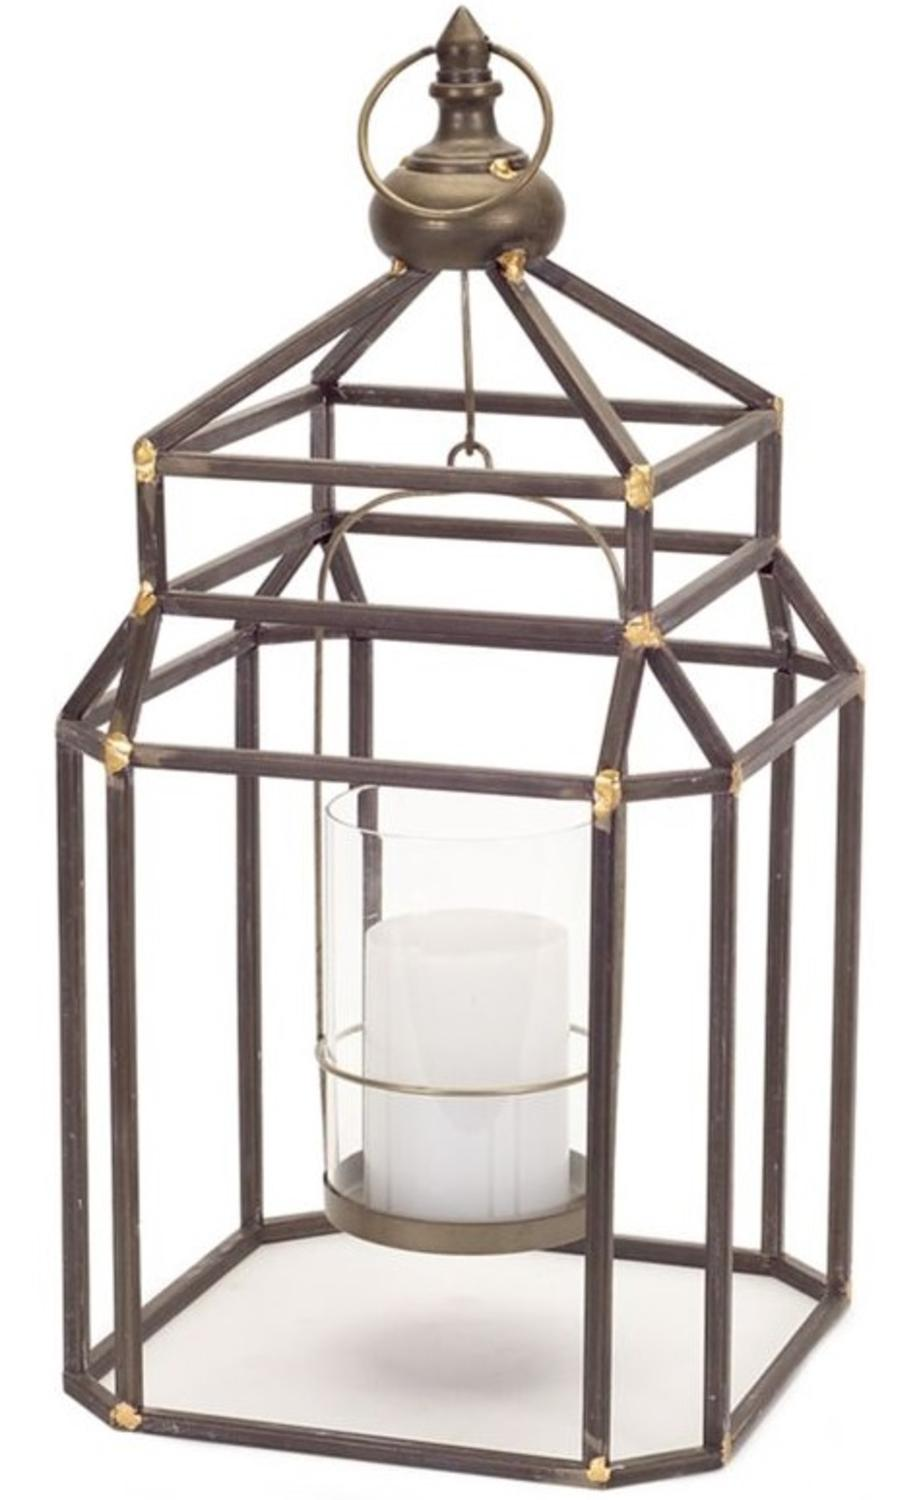 Pack of 2 Decorative Contemporary Geometric Metal 21.5�H Hanging Lanterns by Melrose